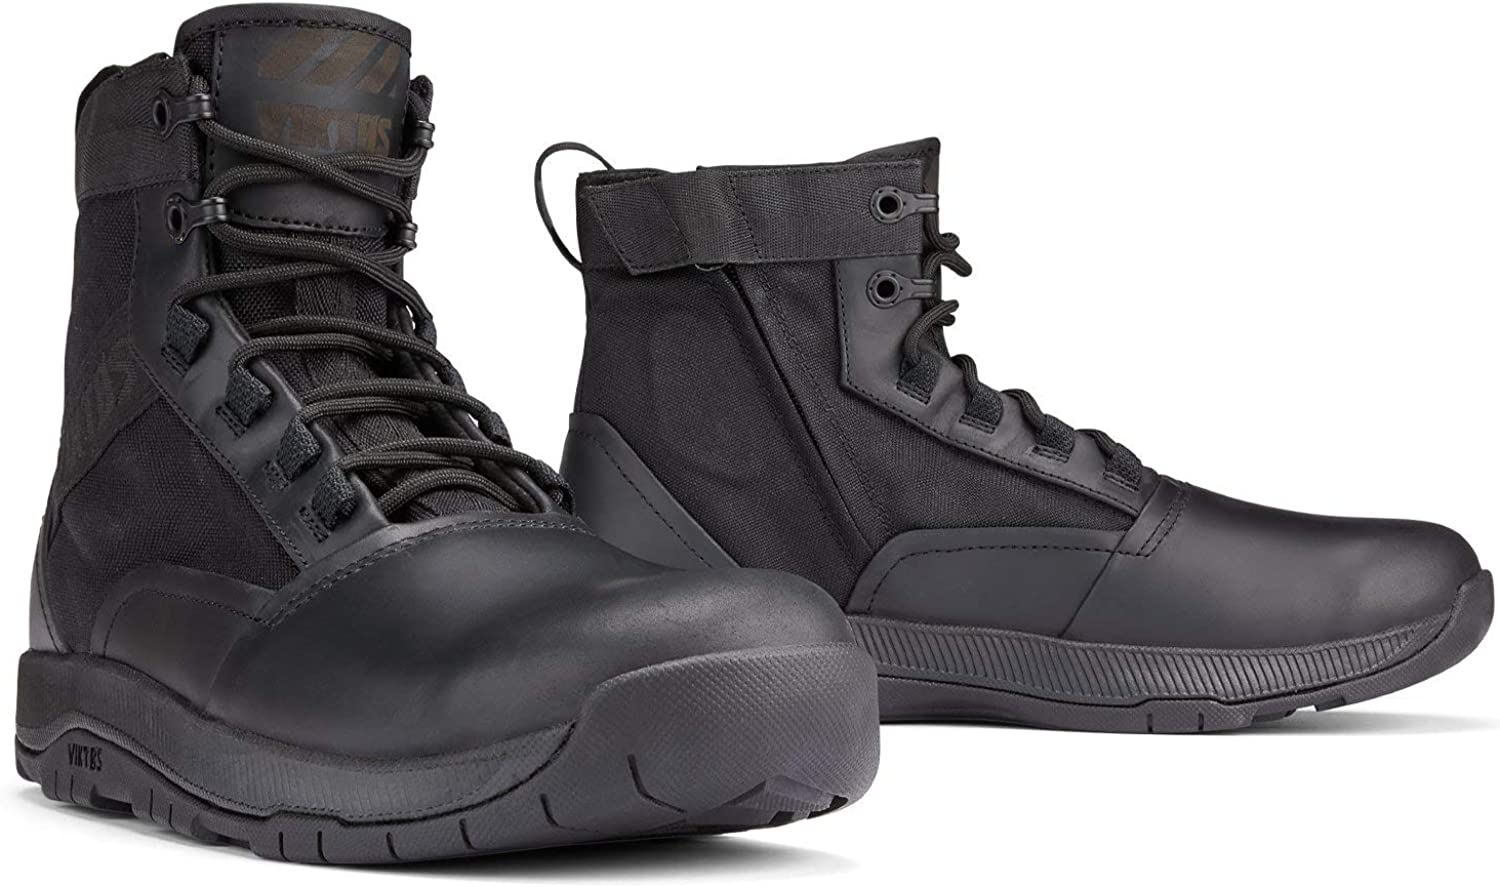 VIKTOS Armory Men's Boot Tactical Popular shop is the lowest price challenge Ranking TOP4 Side-Zip